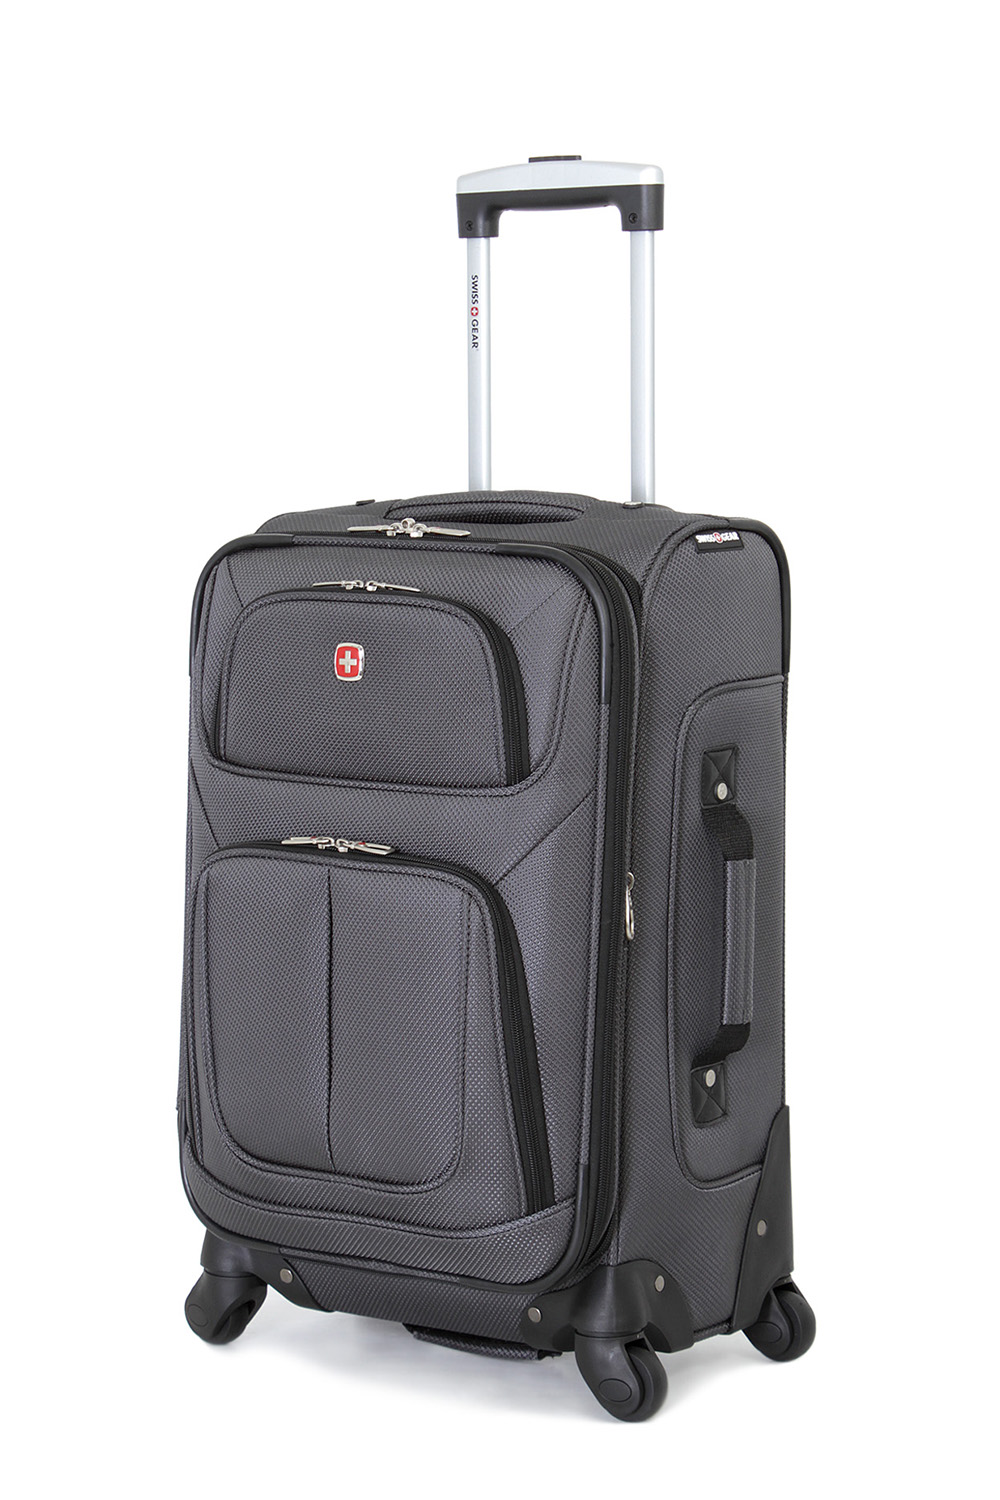 73f90bf08 Swissgear 6283 21 Expandable Carry On Spinner Luggage